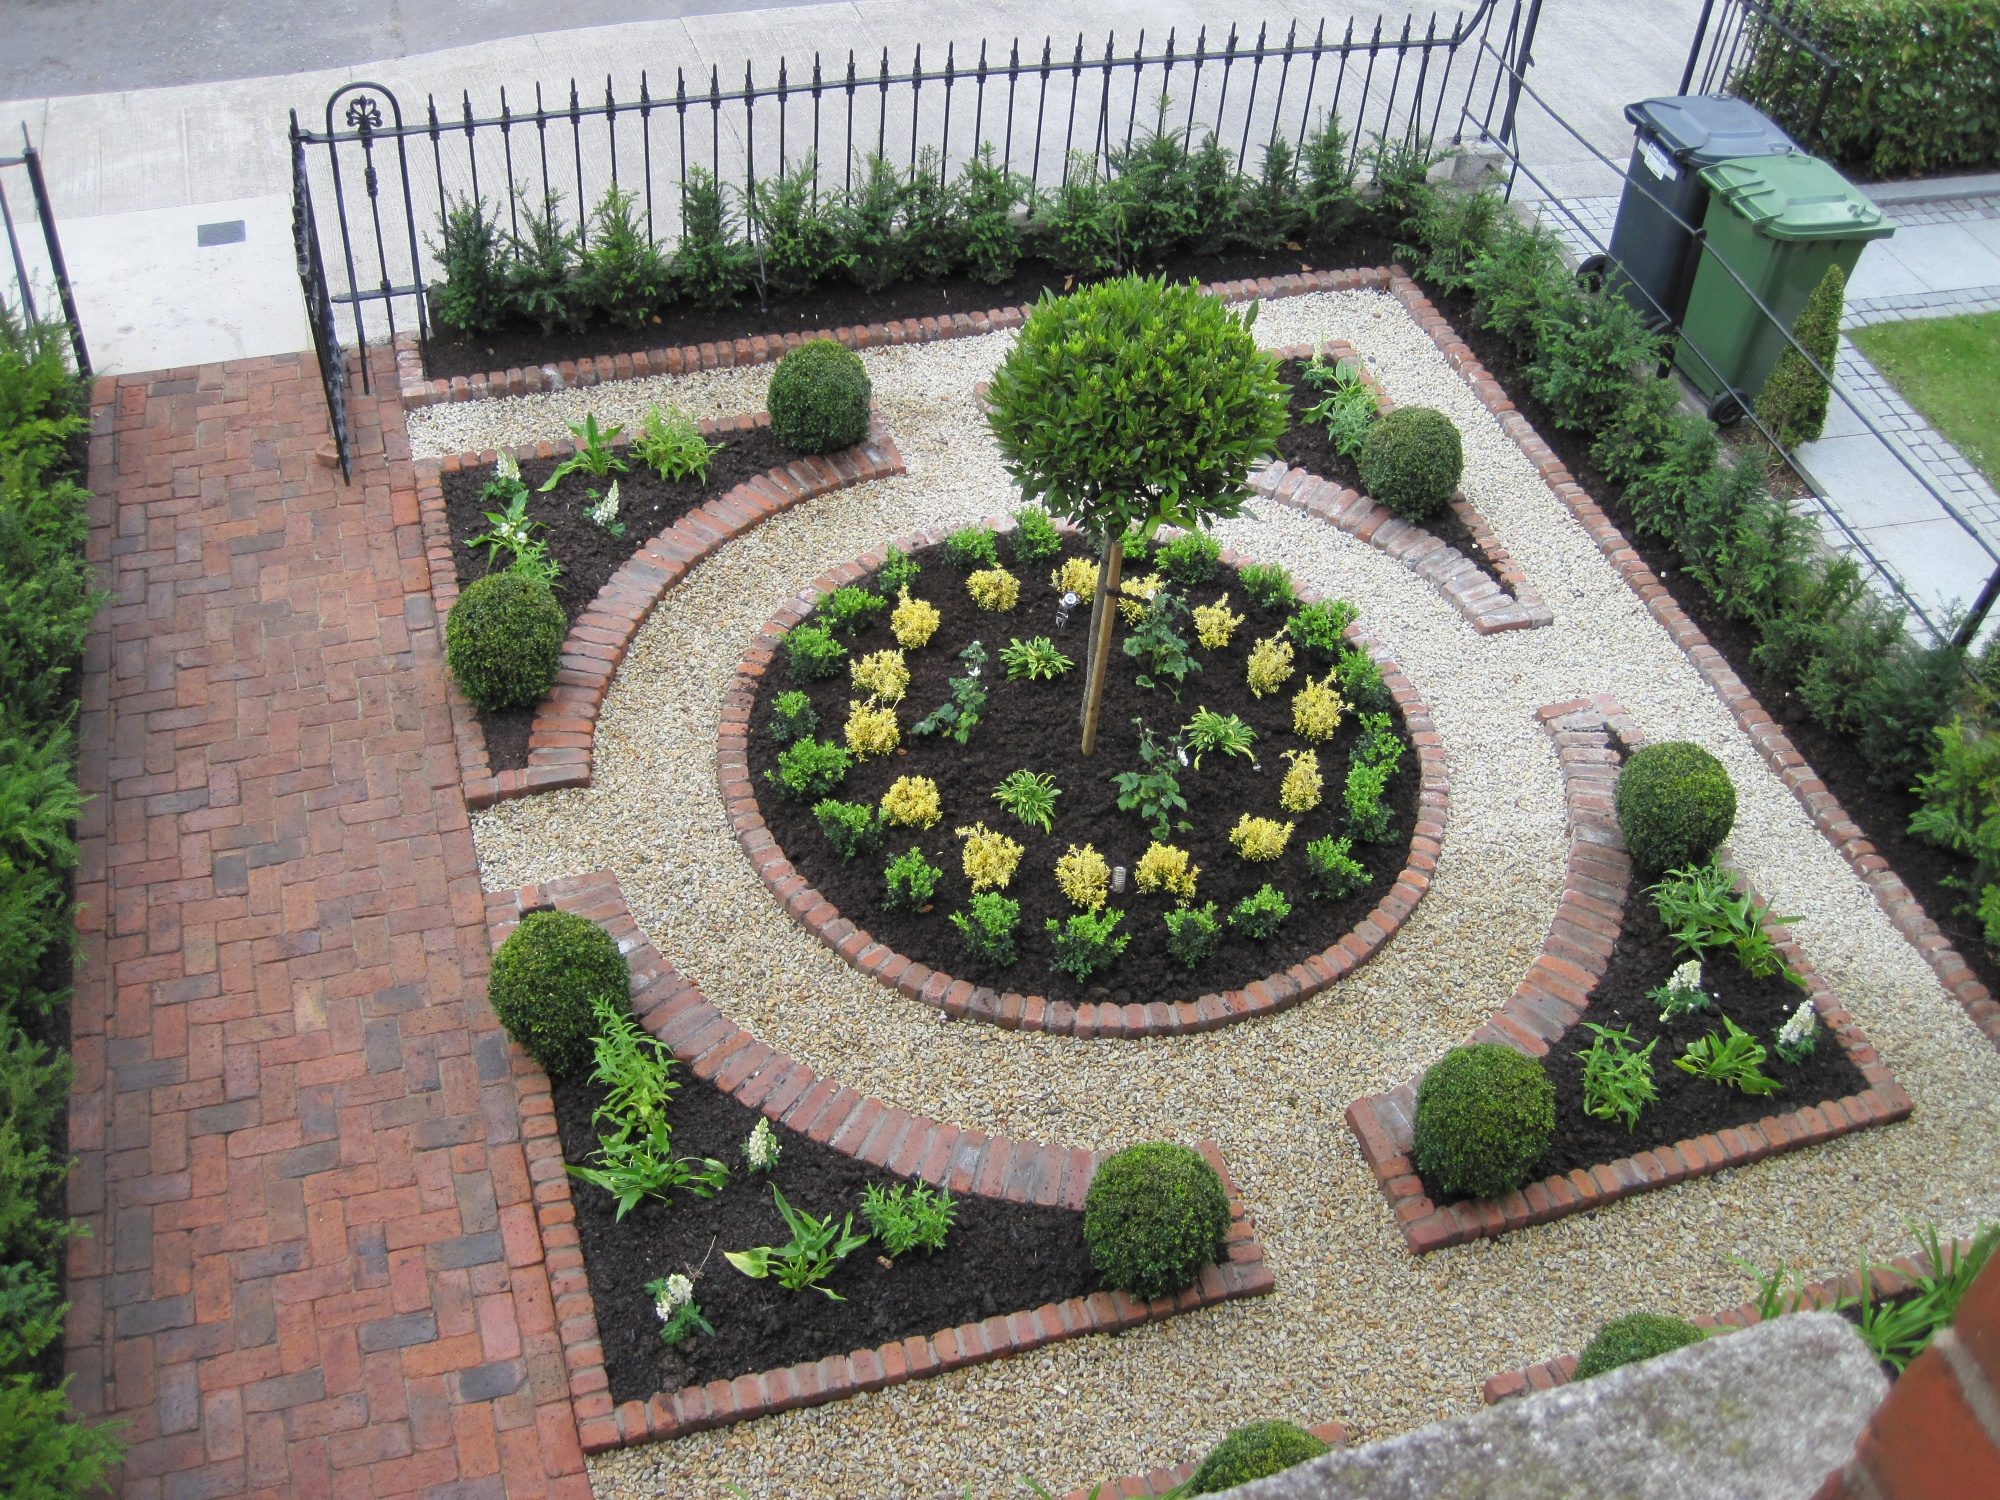 Garden design ideas inspiration advice for all styles for Garden layout design